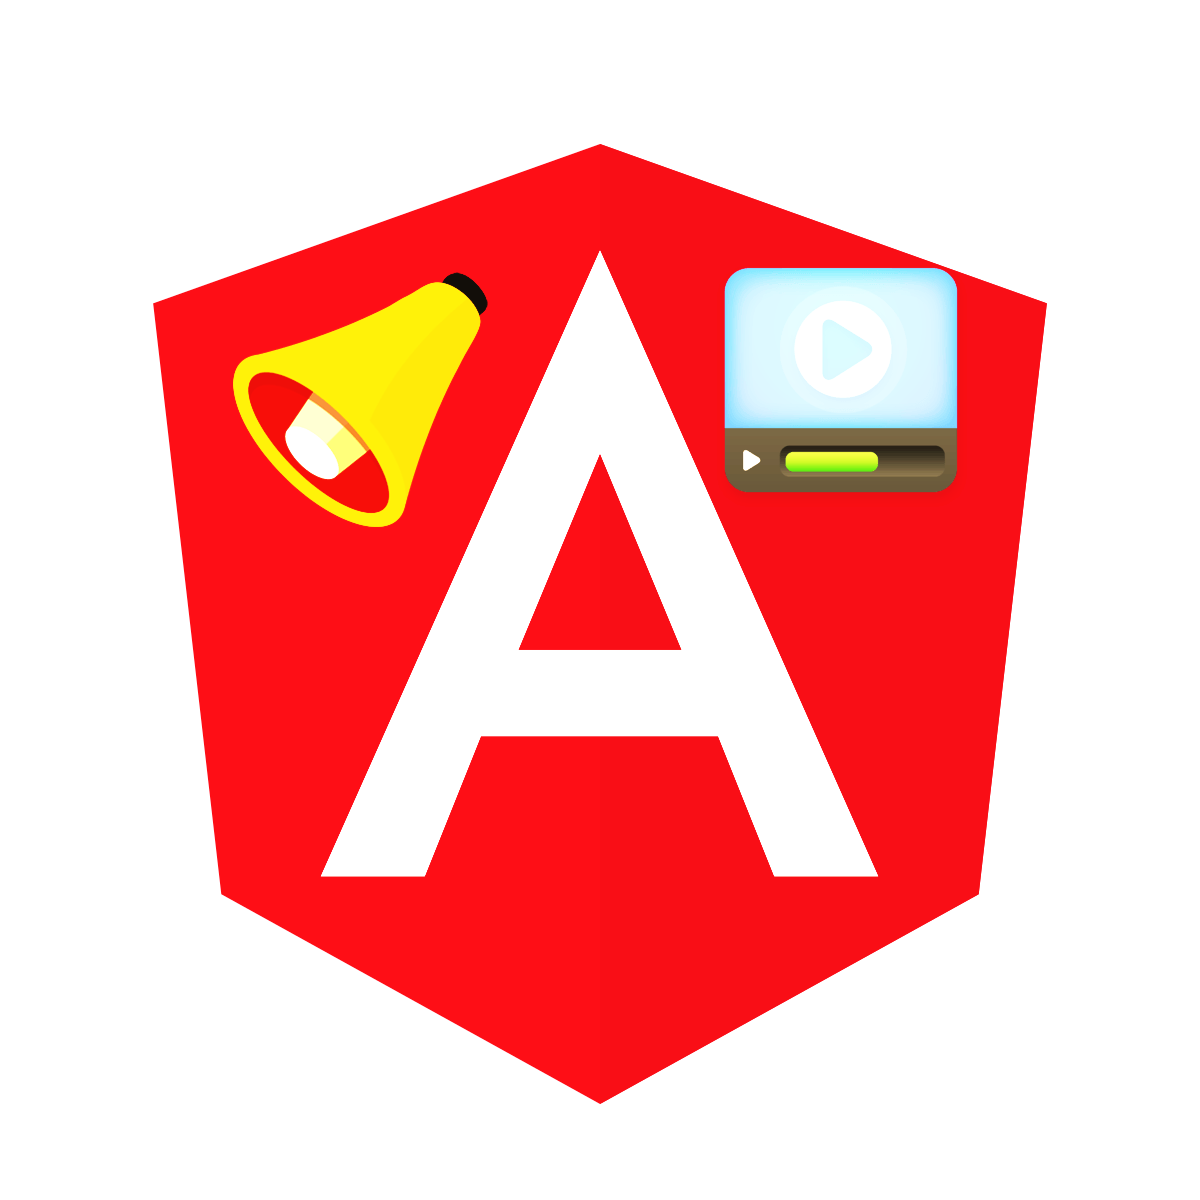 How to run audio file in Angular 9 application?